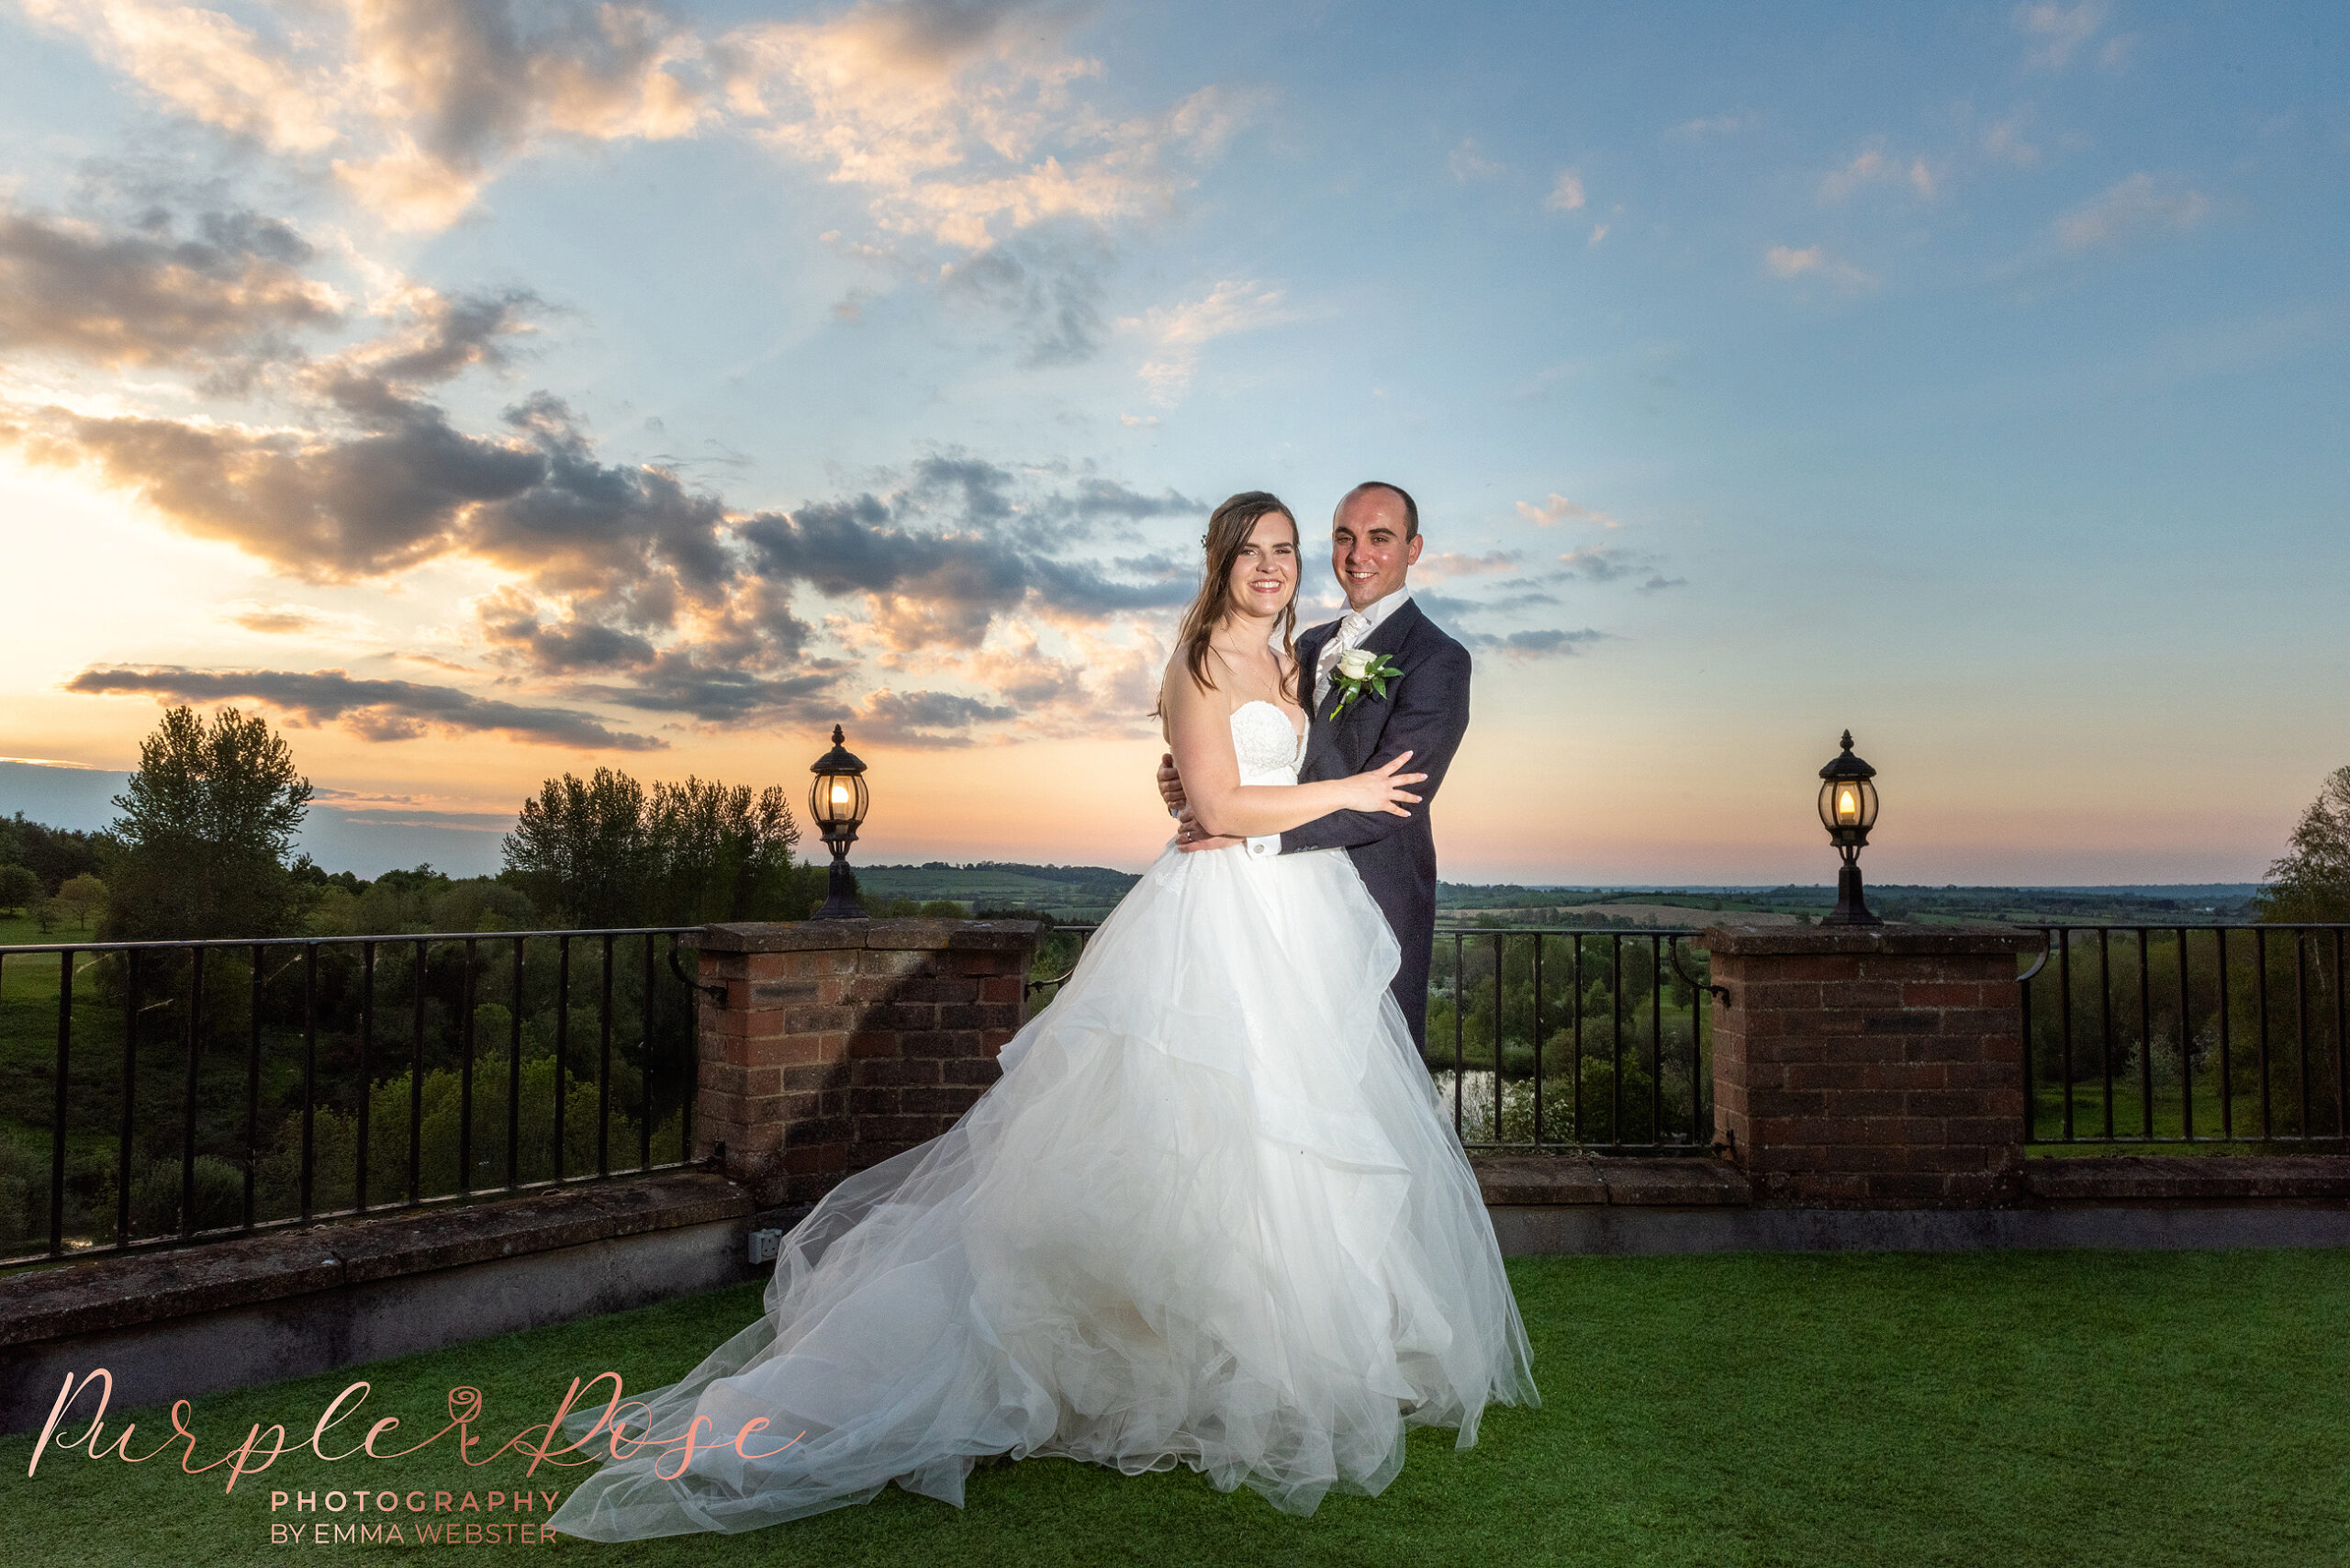 Bride and groom in front of a sunset on a balcony